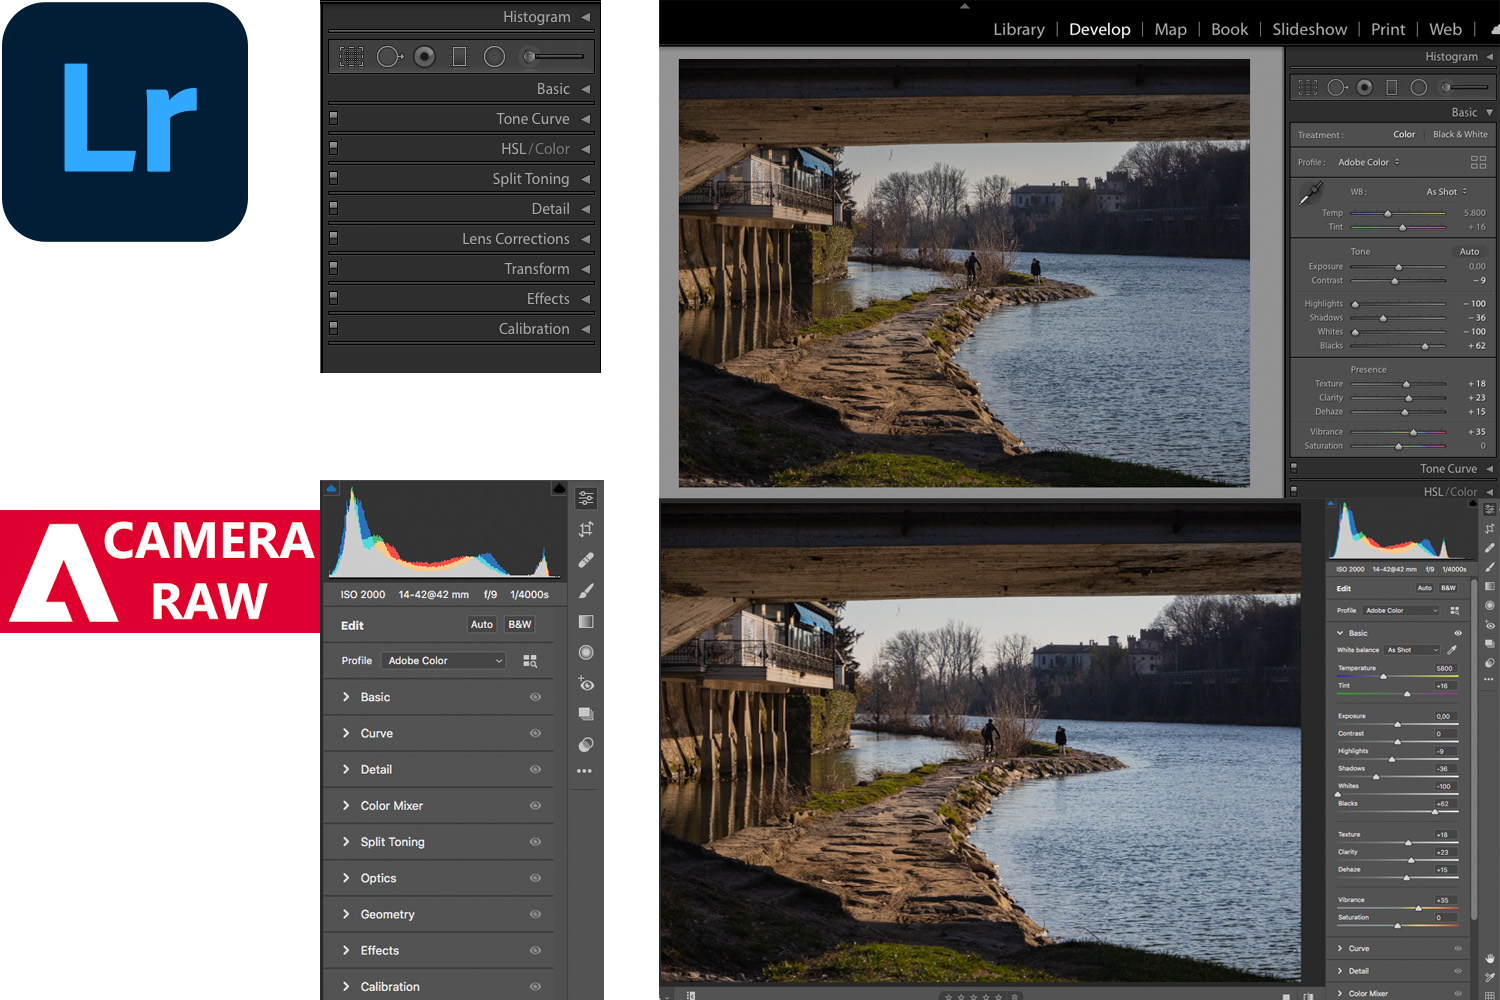 ACR and Lightroom editing options